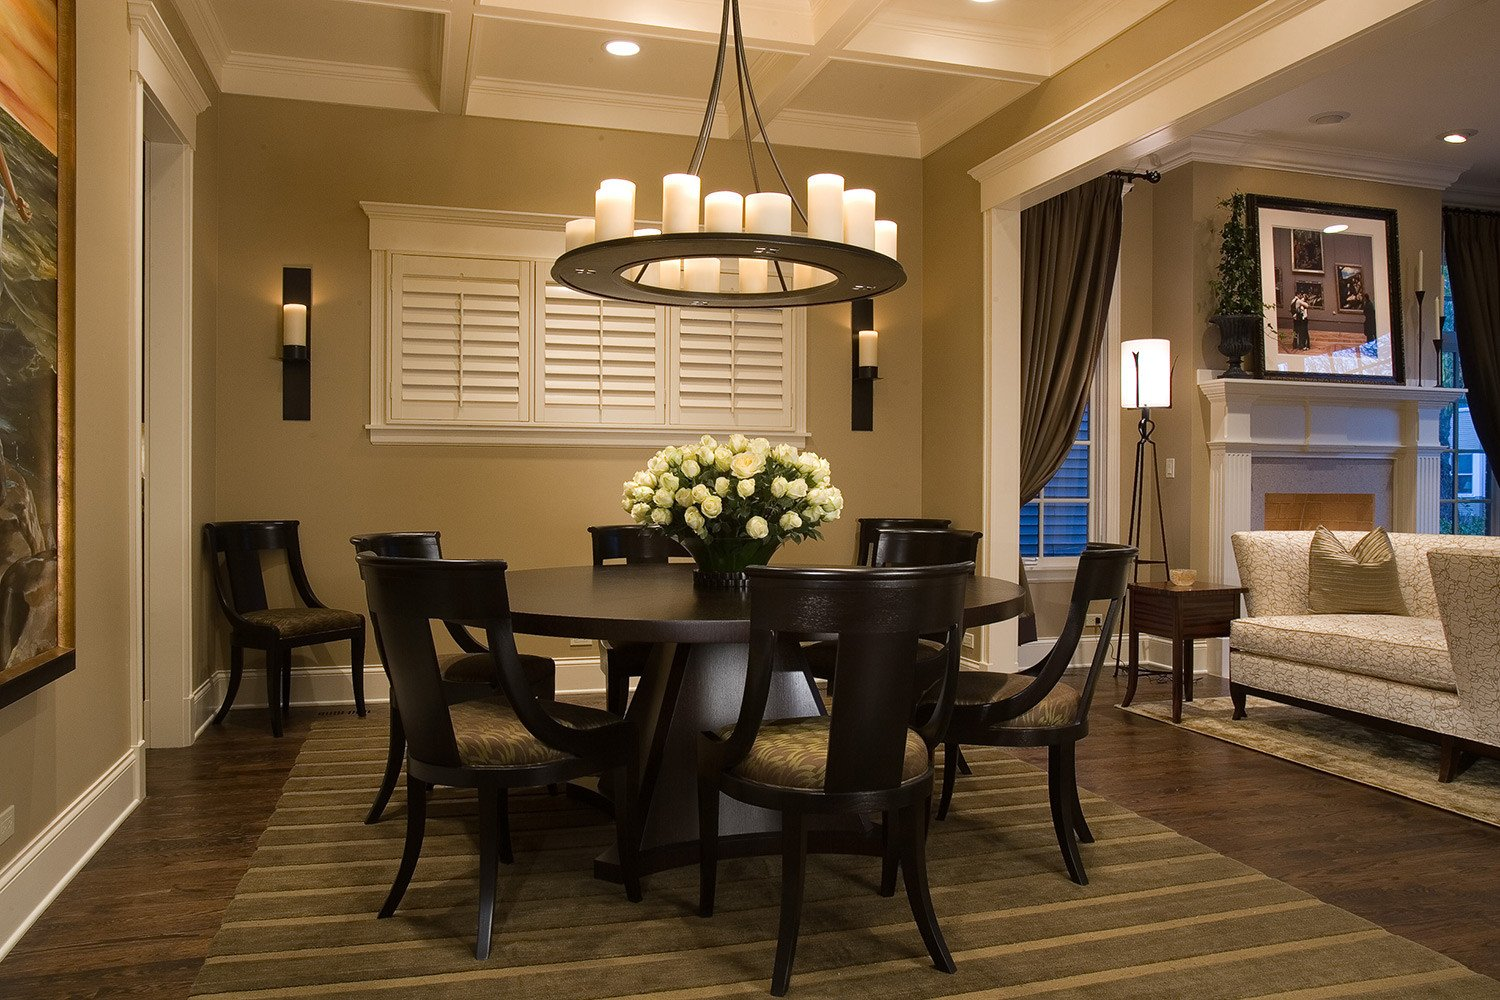 Decor for Dining Room Tables Inspirational Round Dining Table to Decorate Your Home